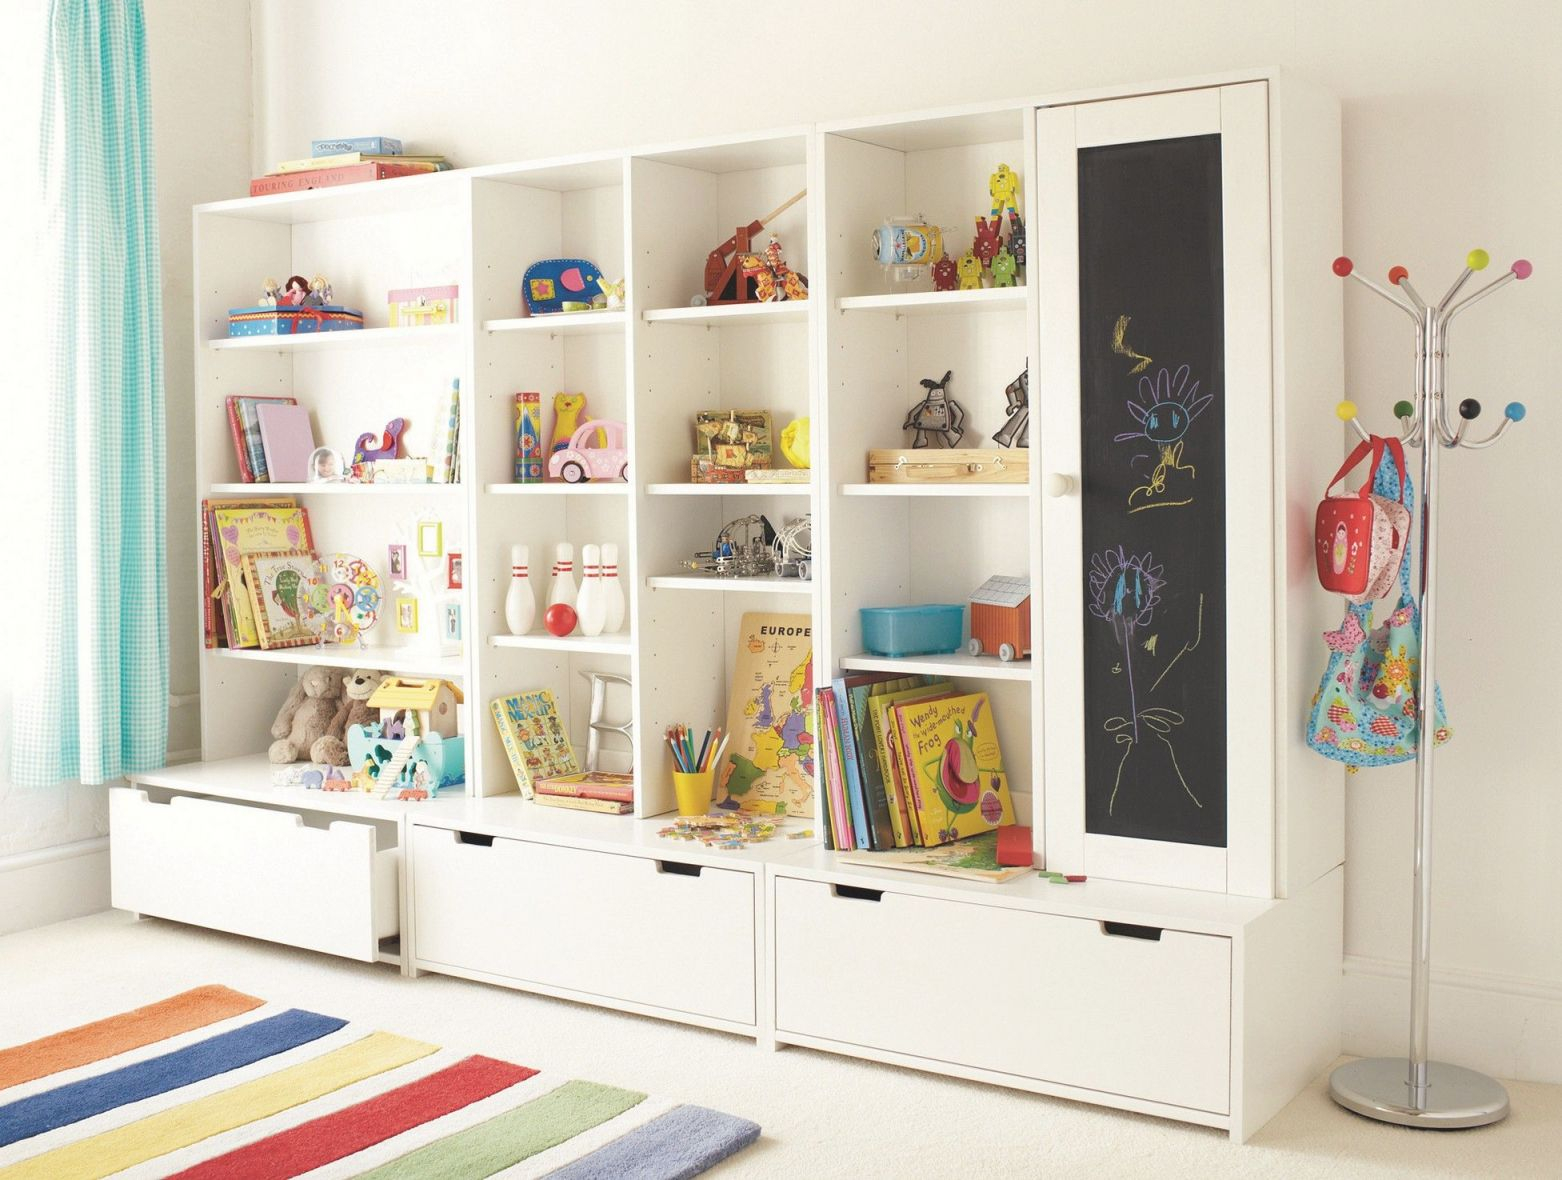 Perfect Toy Storage Ideas For Living Room @rr65 – Roccommunity inside Lovely Living Room Toy Storage Ideas